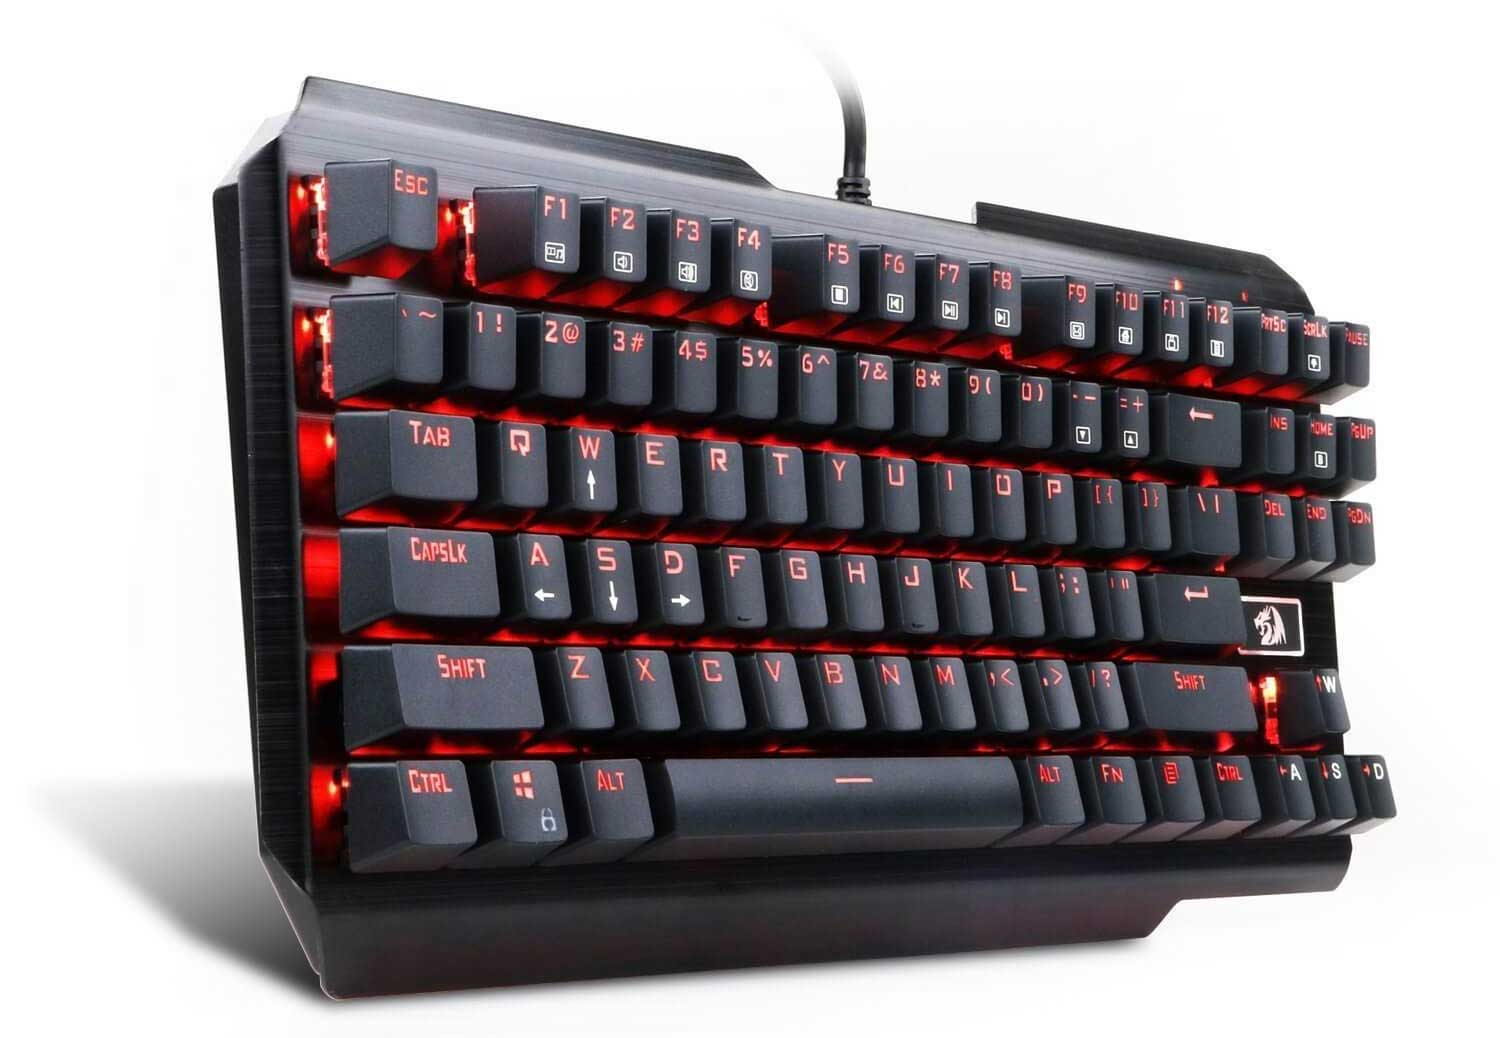 Redragon USAS K553 Keys Review